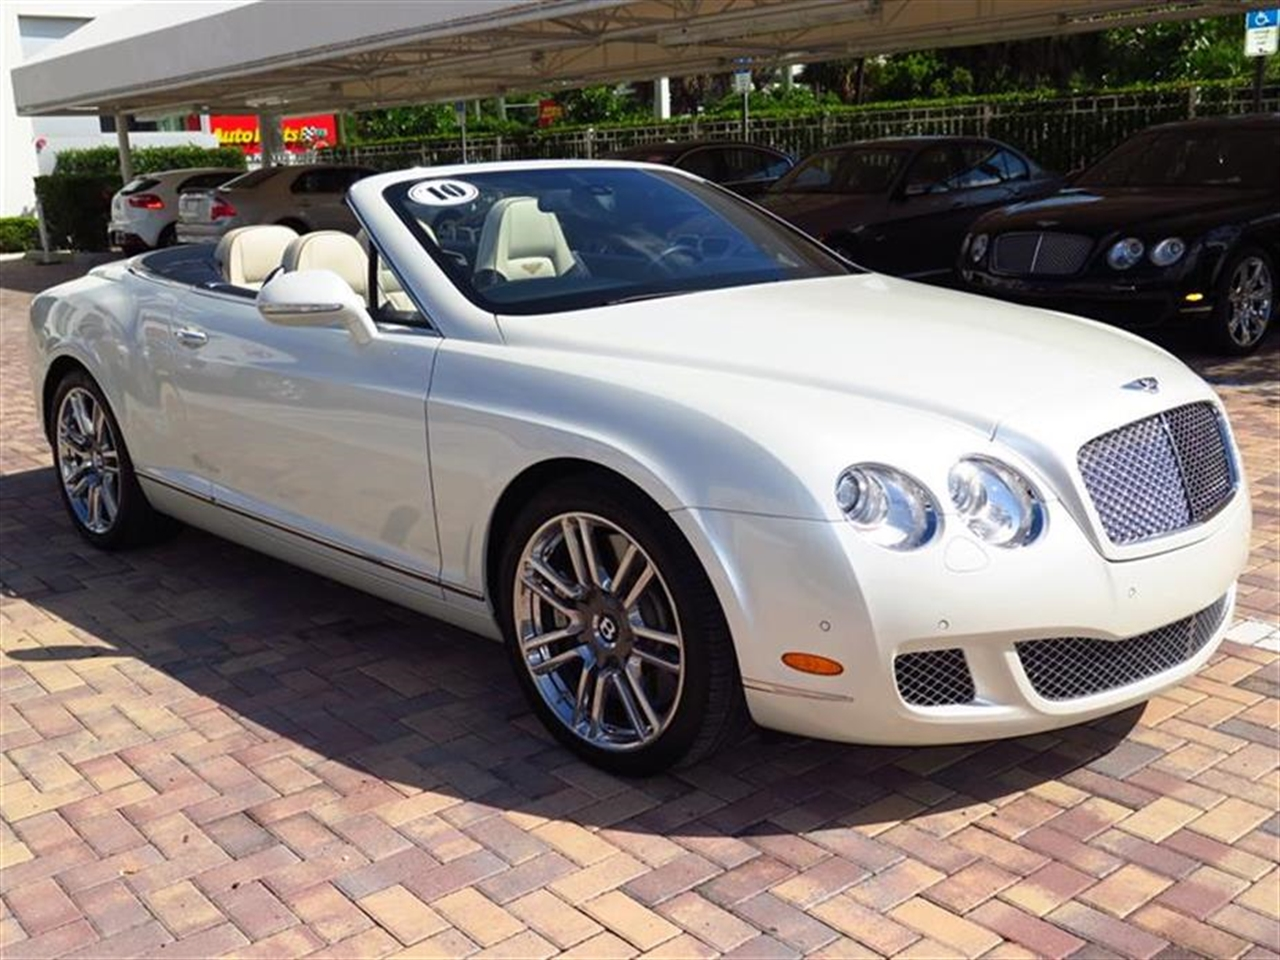 2010 BENTLEY CONTINENTAL GTC 2dr Conv 7022 miles 4-spoke monotone leather trimmed steering wheel